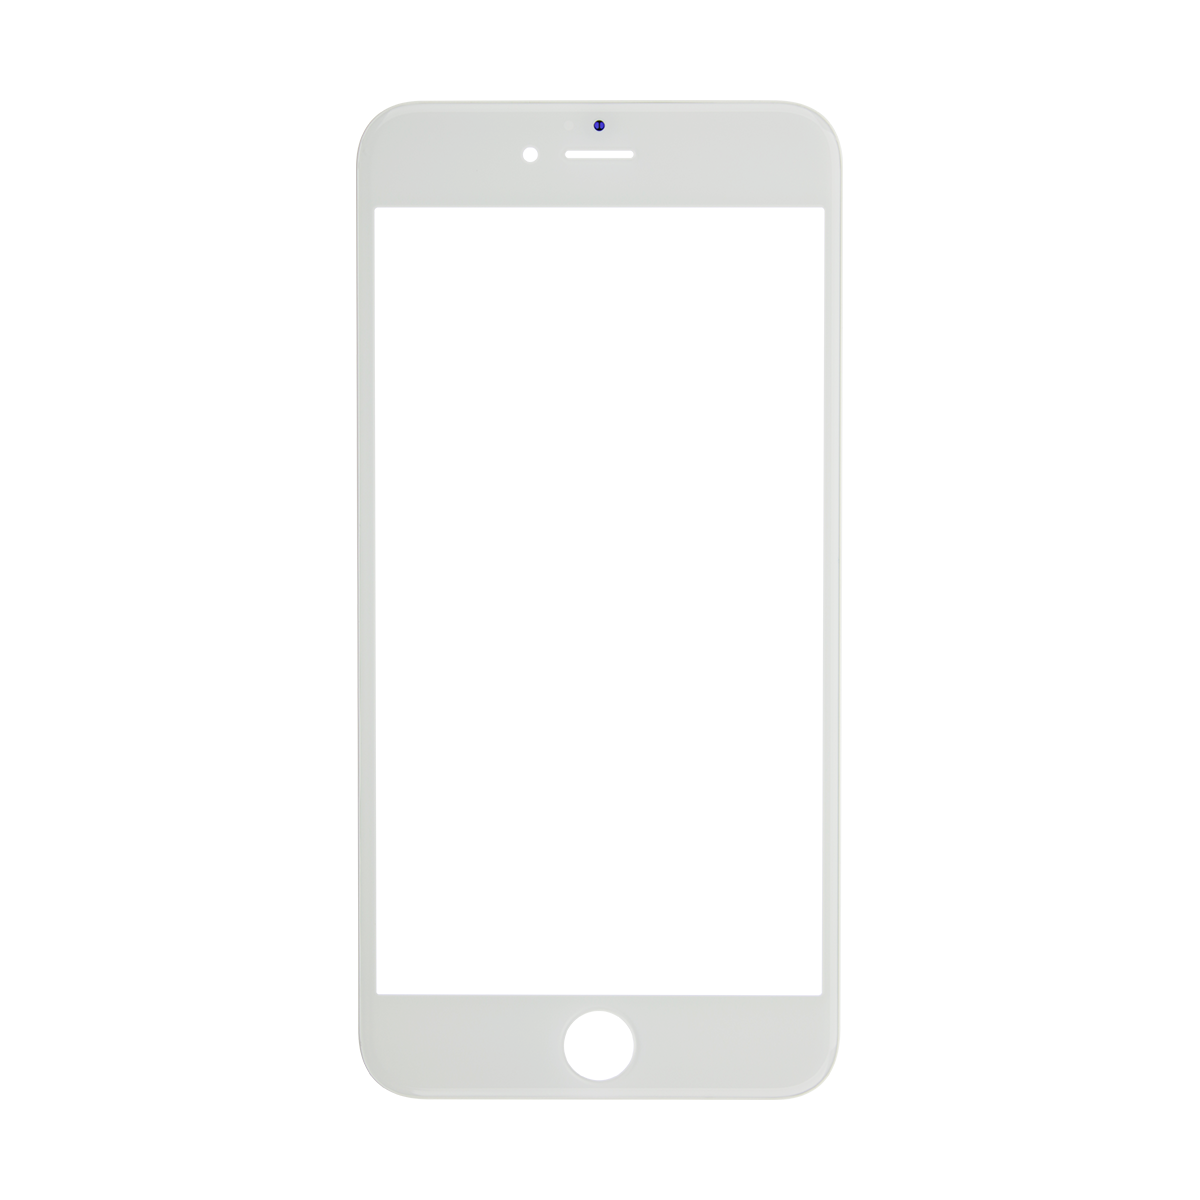 Iphone frame png, Iphone frame png Transparent FREE for.